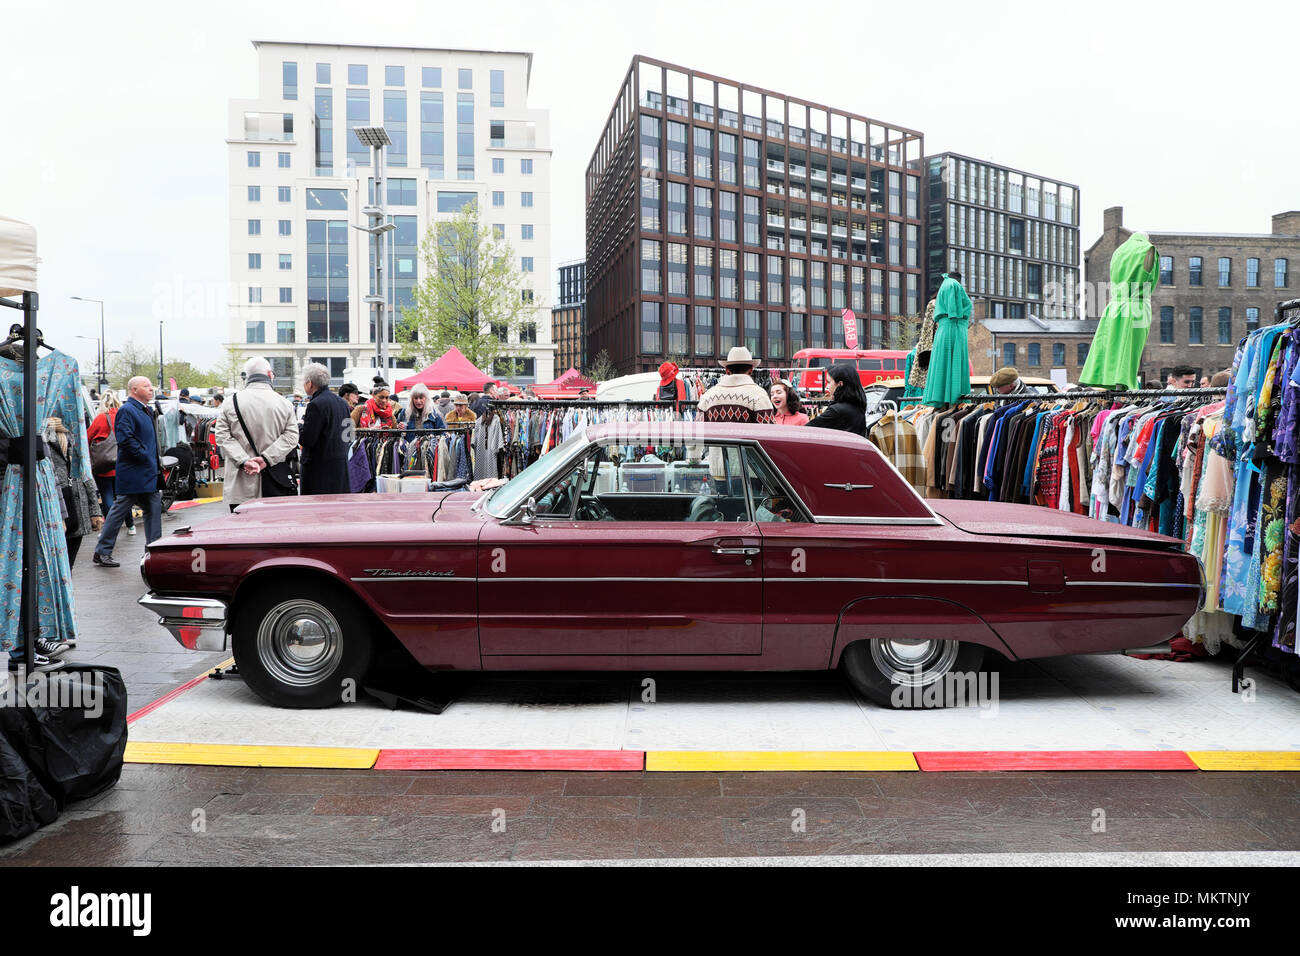 Vintage car boot sale and maroon Ford Thunderbird car at Granary Square street market in  Kings Cross London UK  KATHY DEWITT - Stock Image